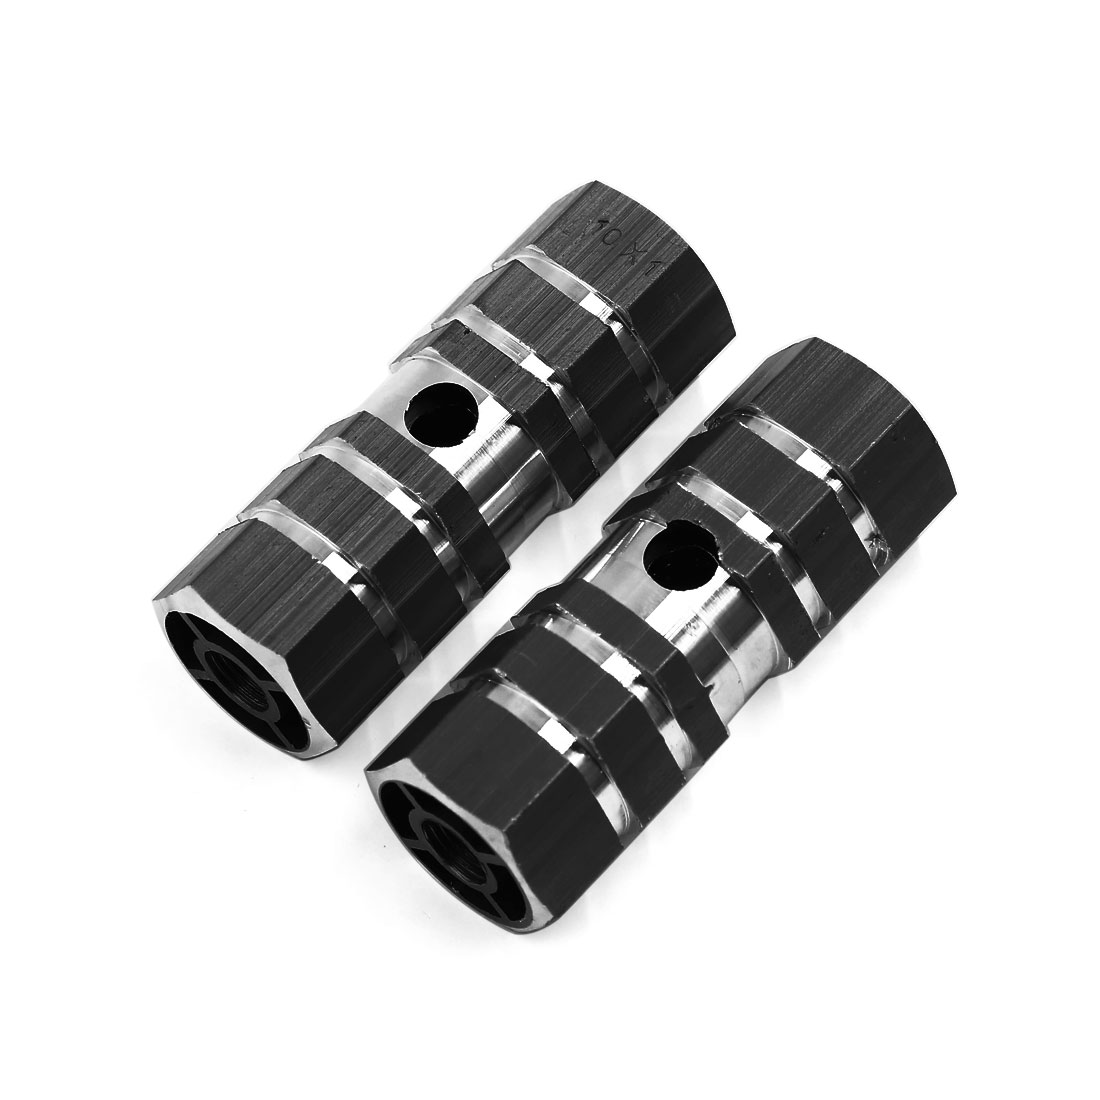 2 Pcs Cycling Bike Bicycle Antislip Sexangle Cylinder Axle Foot Pegs 9mm Thread